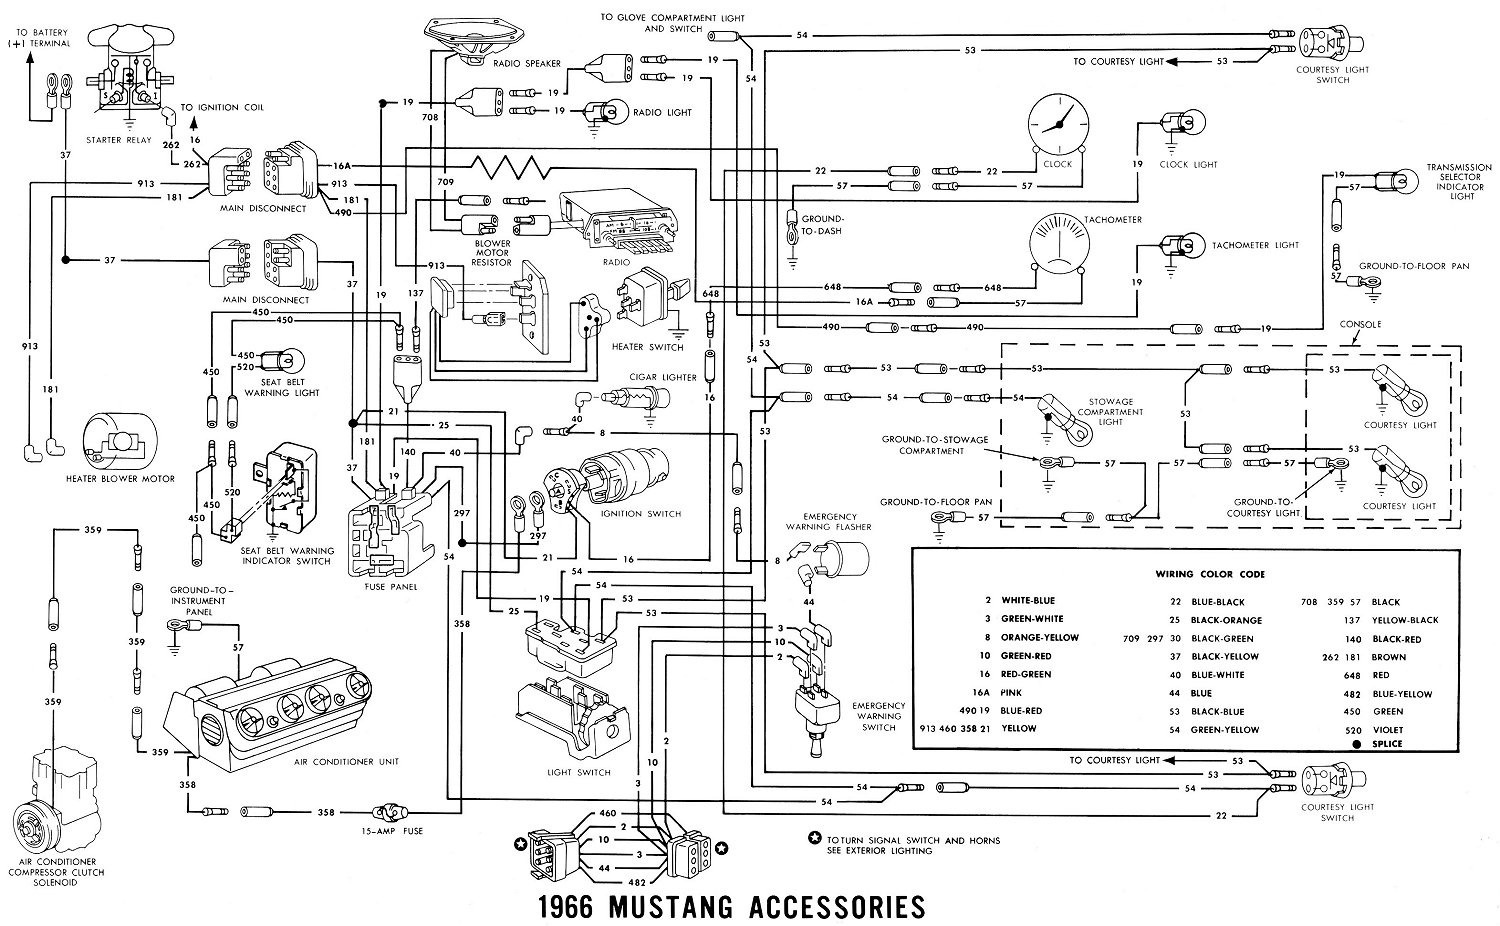 730n Wiring Diagram 66 Mustang Convertible Harness Auto Electrical Vintage Diagrams